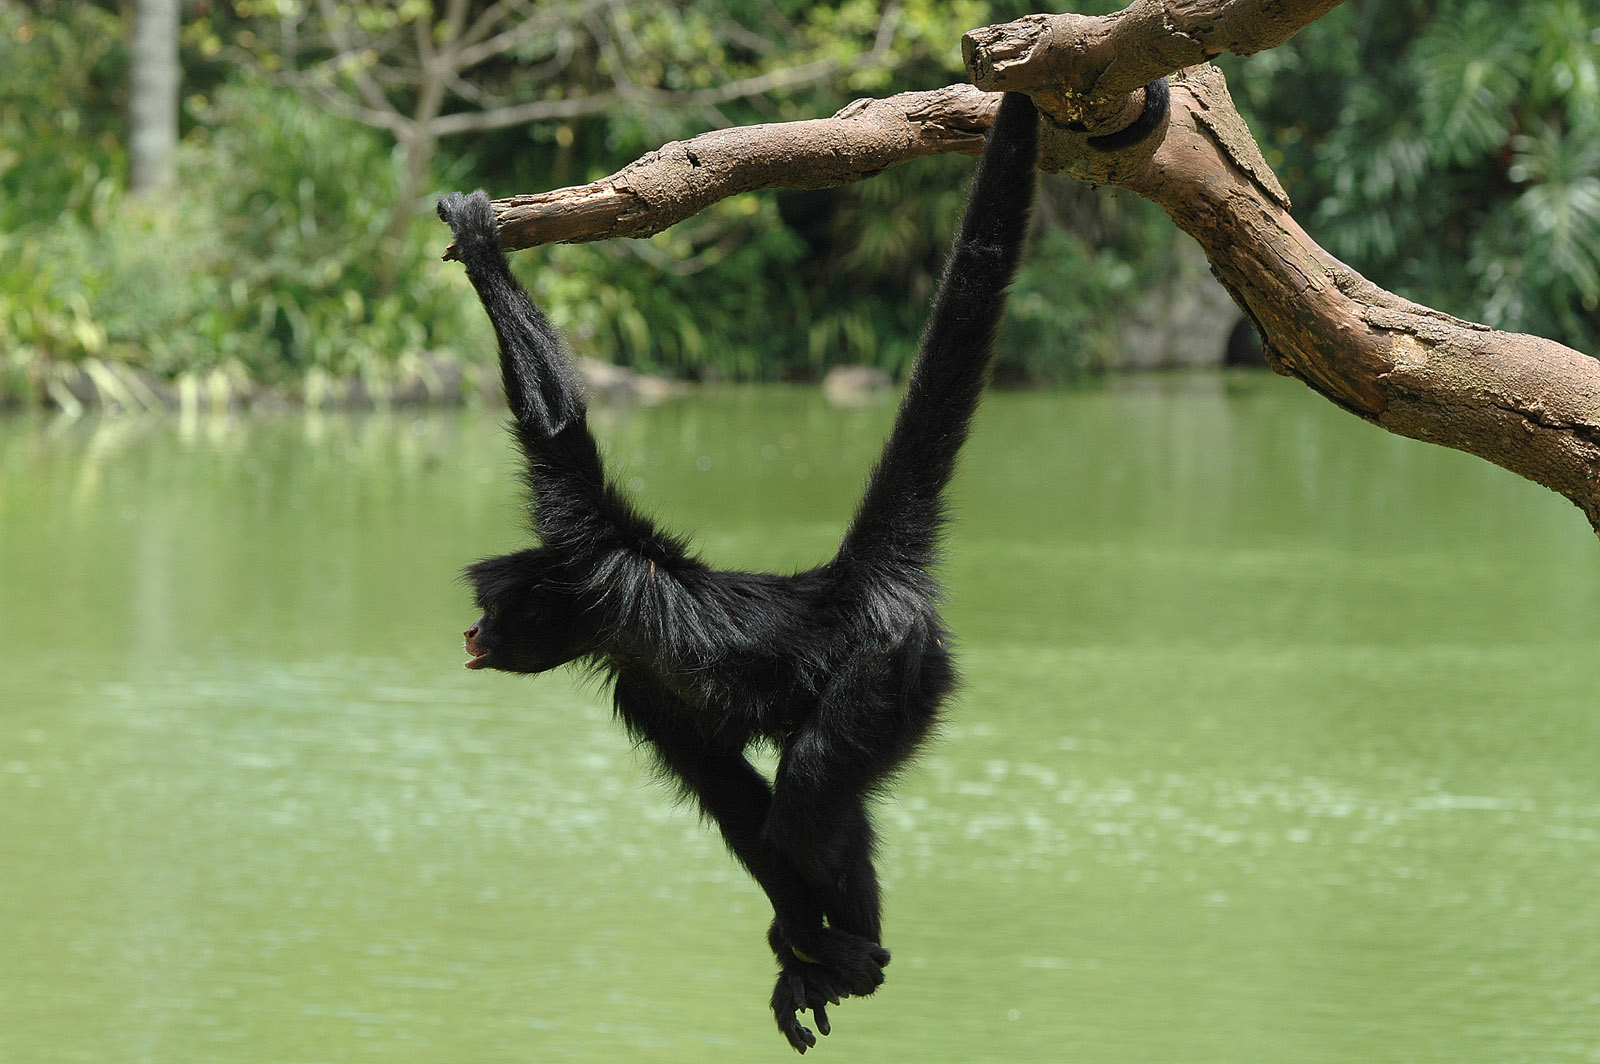 Swinging-Monkey-primates-356126_1600_1064.jpg